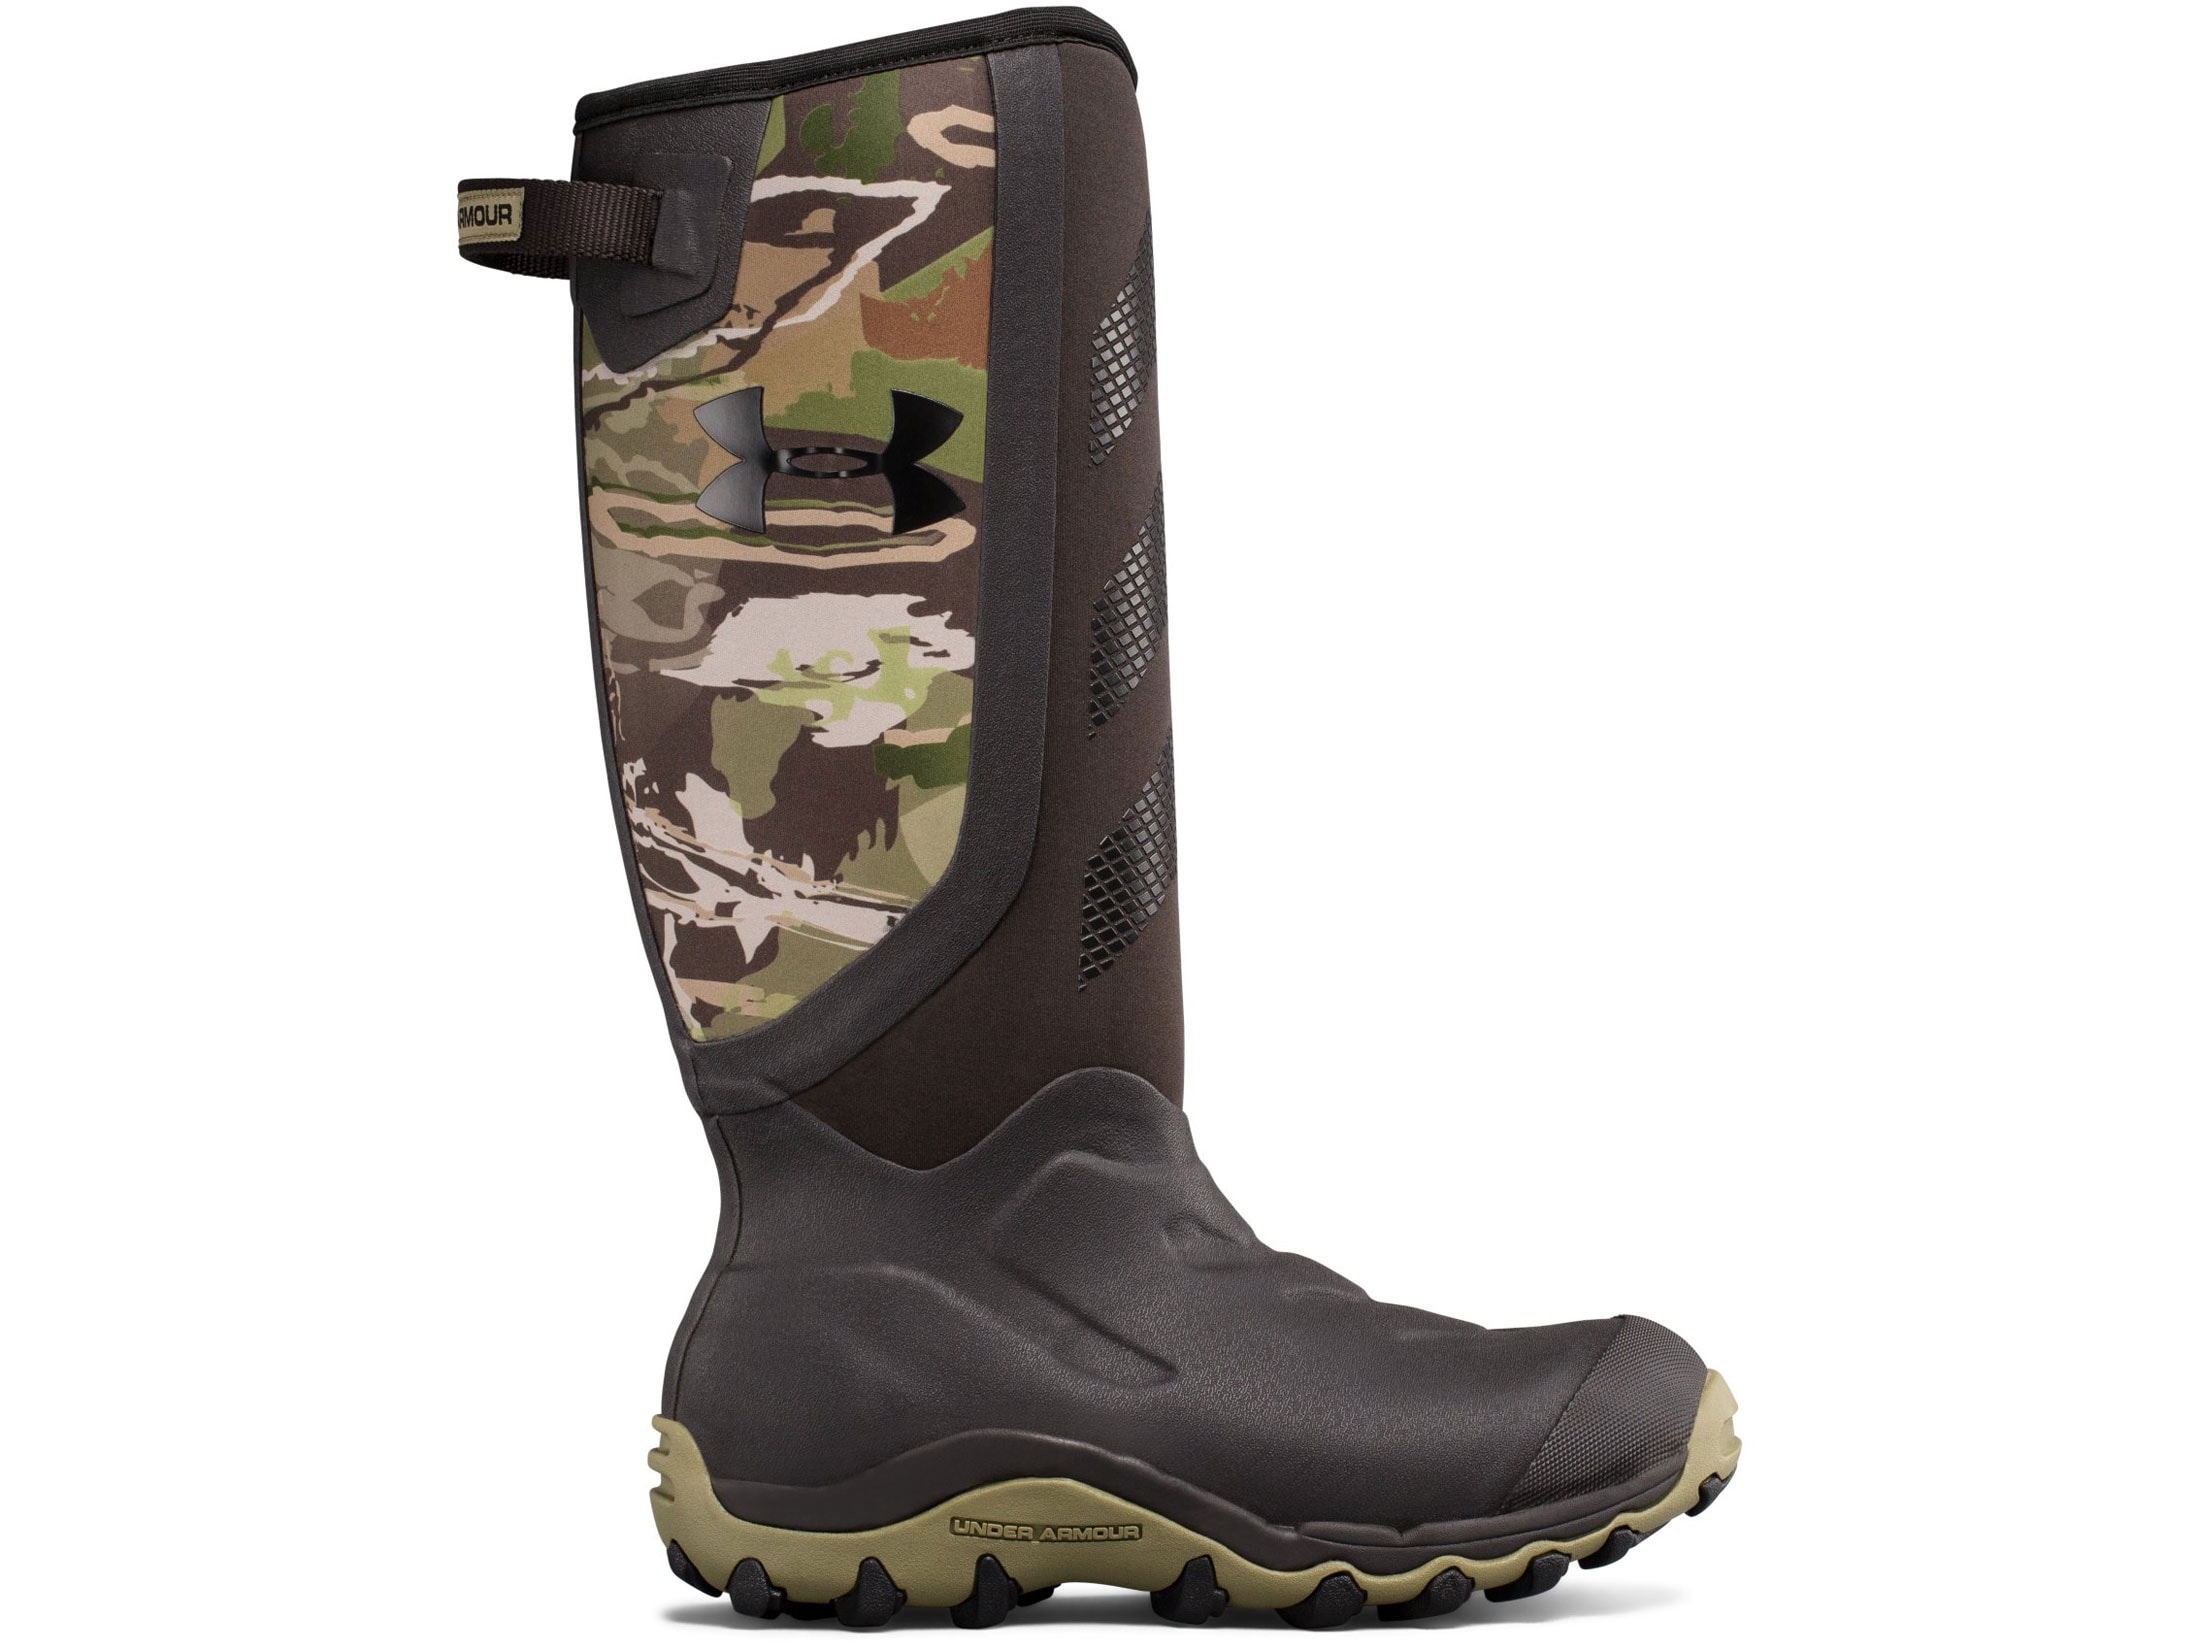 16 Hunting Boots Rubber Realtree Xtra Camo